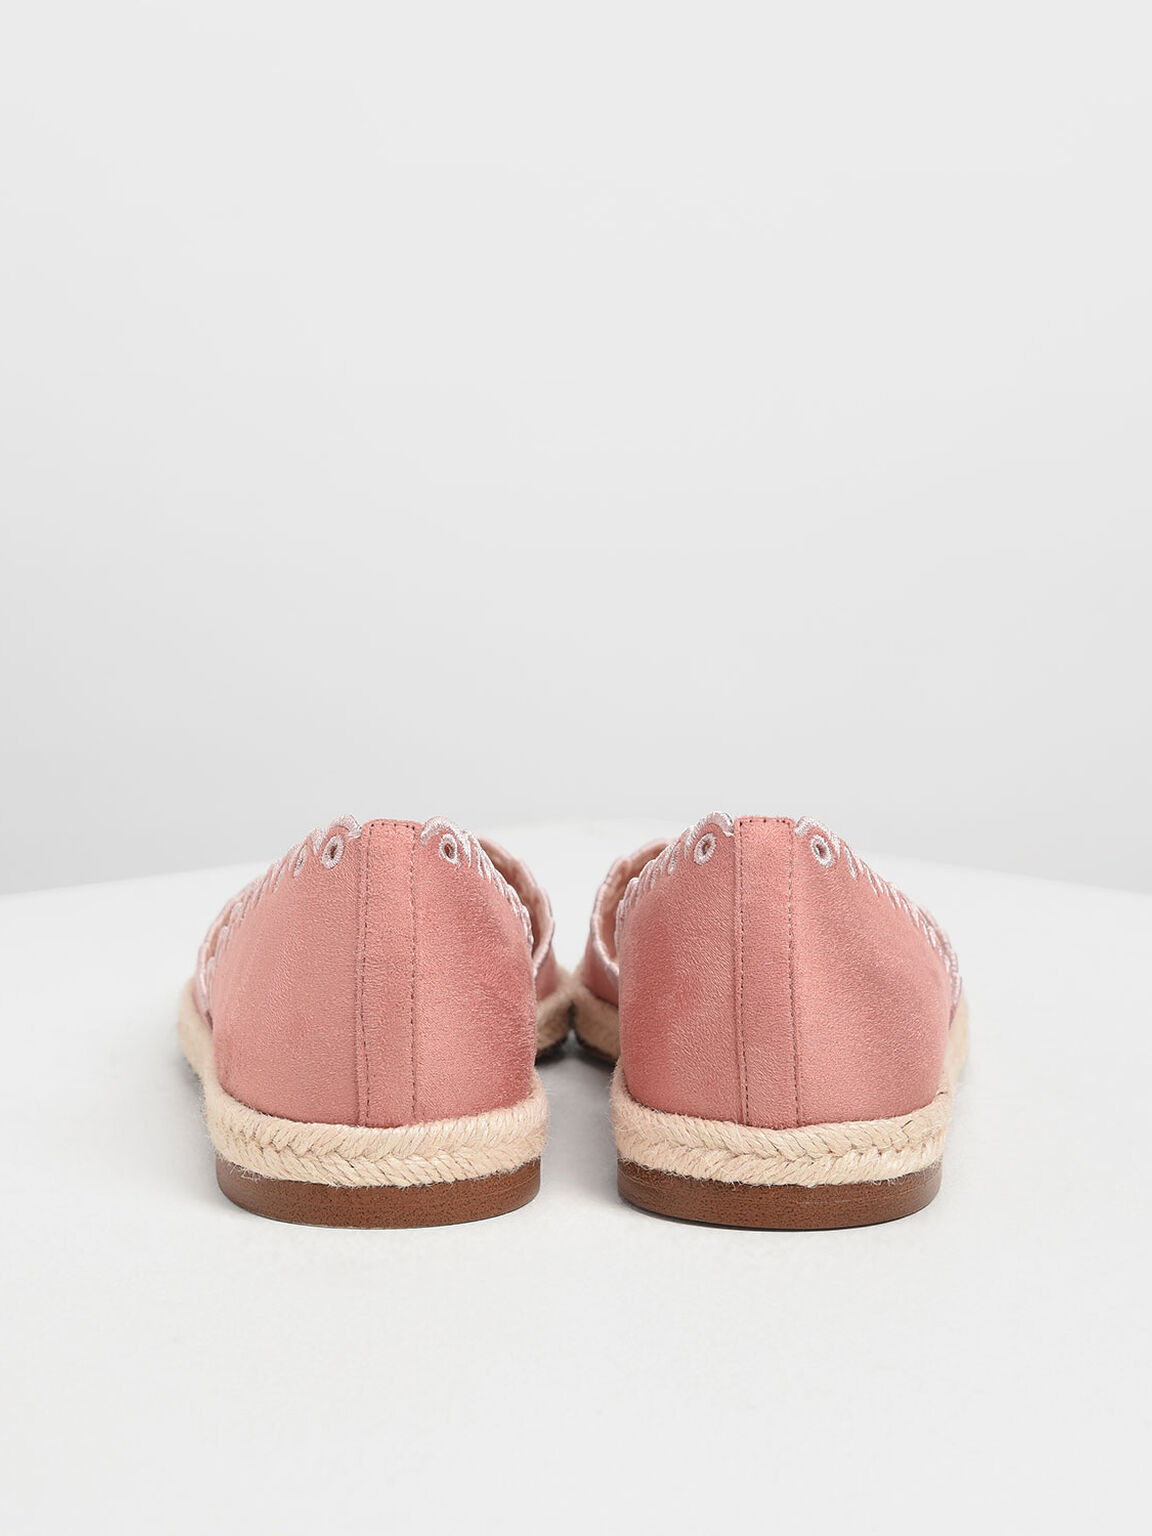 Scalloped Espadrille Covered Flats, Pink, hi-res